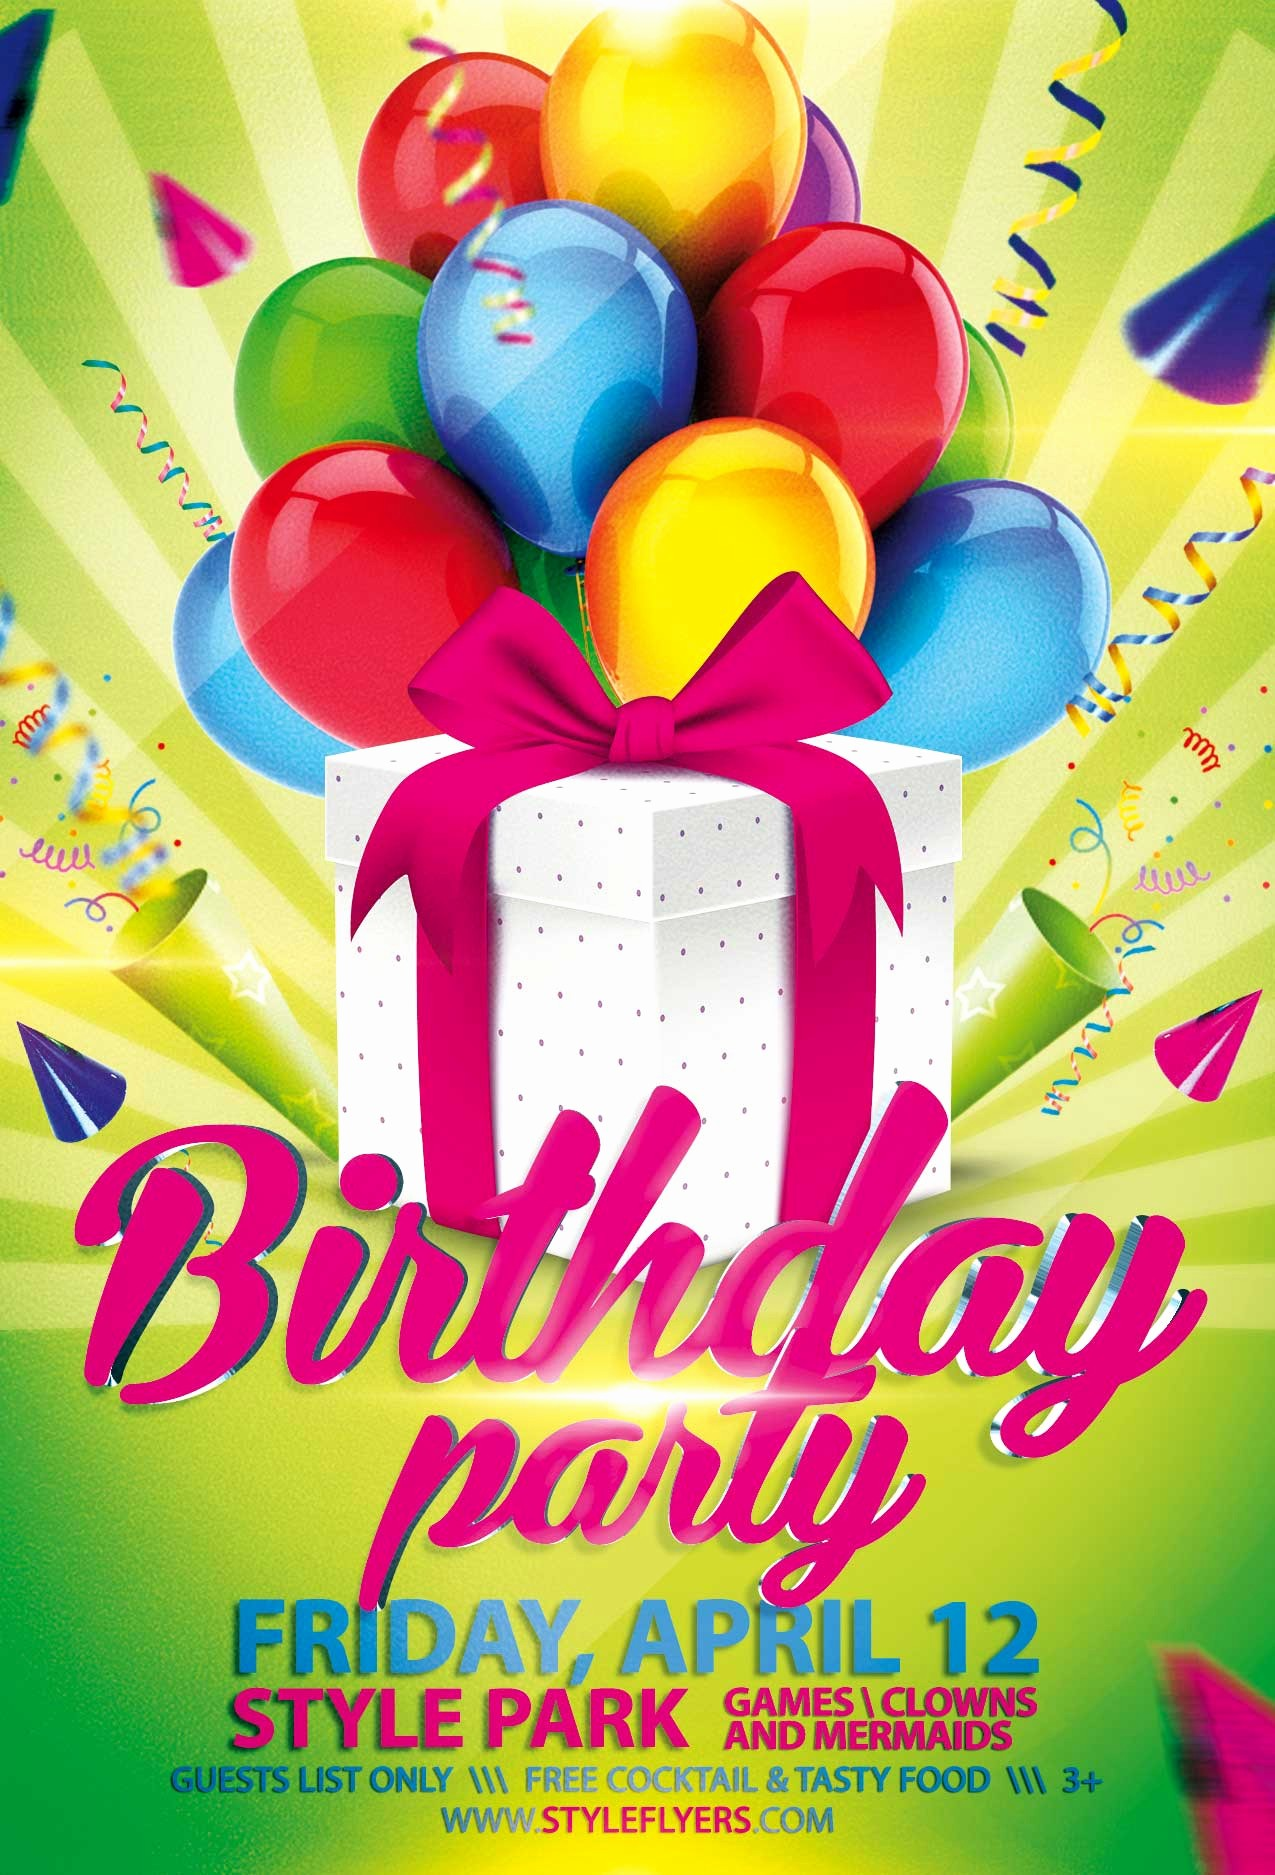 Birthday Party Flyer Template Free Elegant Birthday Party Psd Flyer Template with Animated Fully